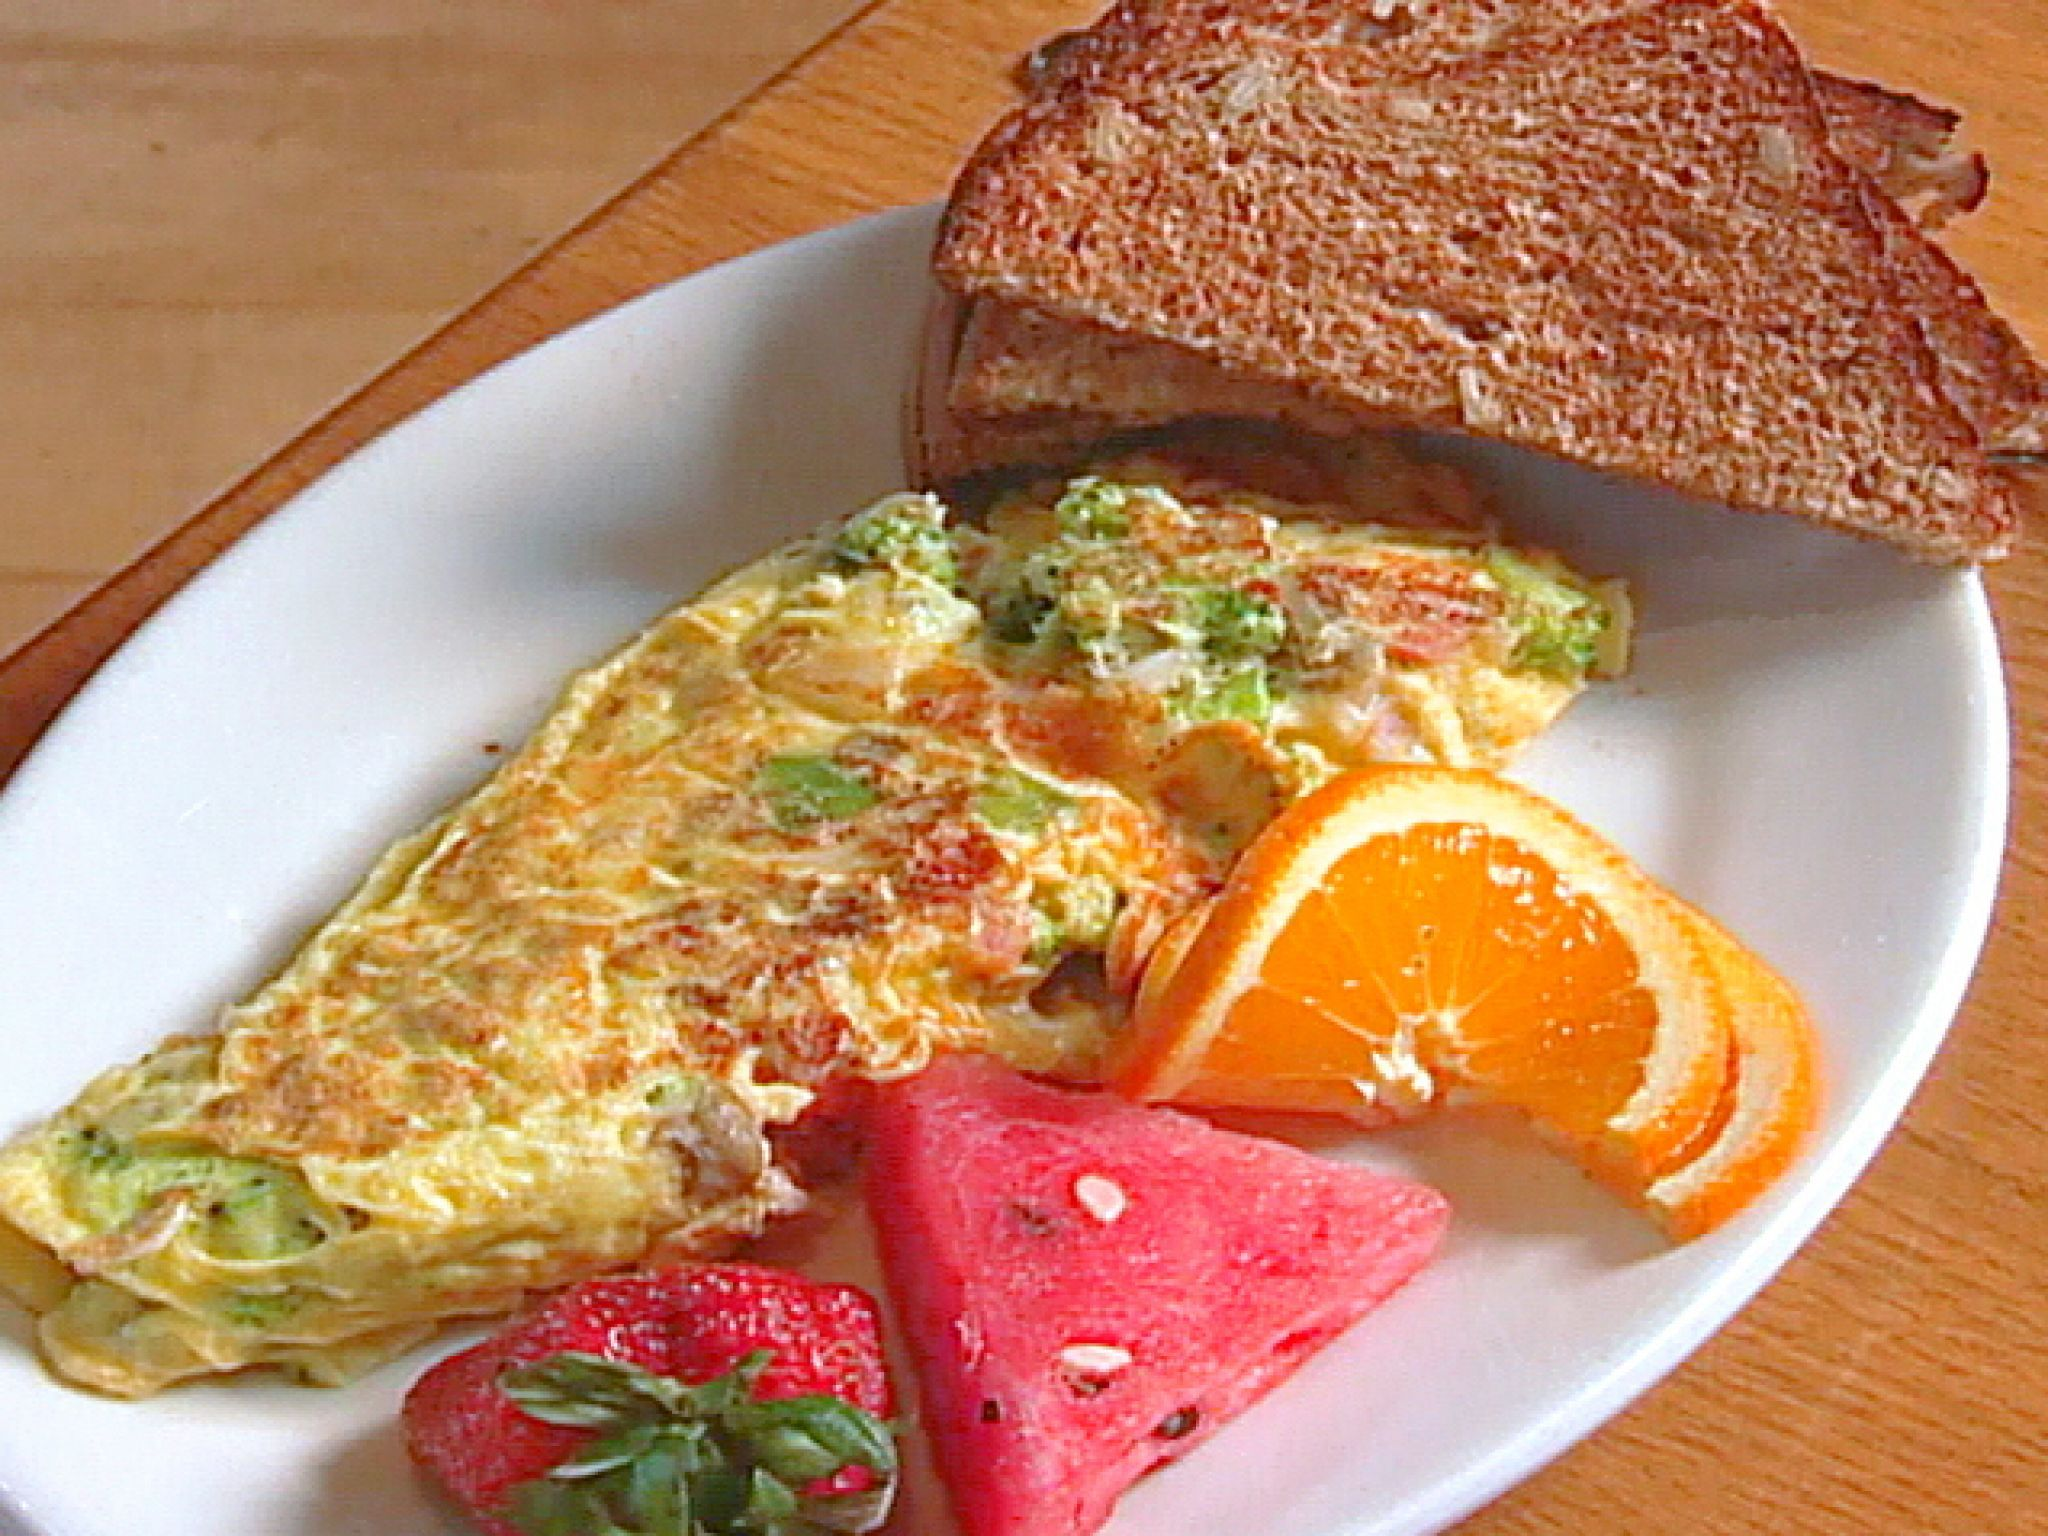 The rachael omelet recipe recipes and foods foods forumfinder Choice Image